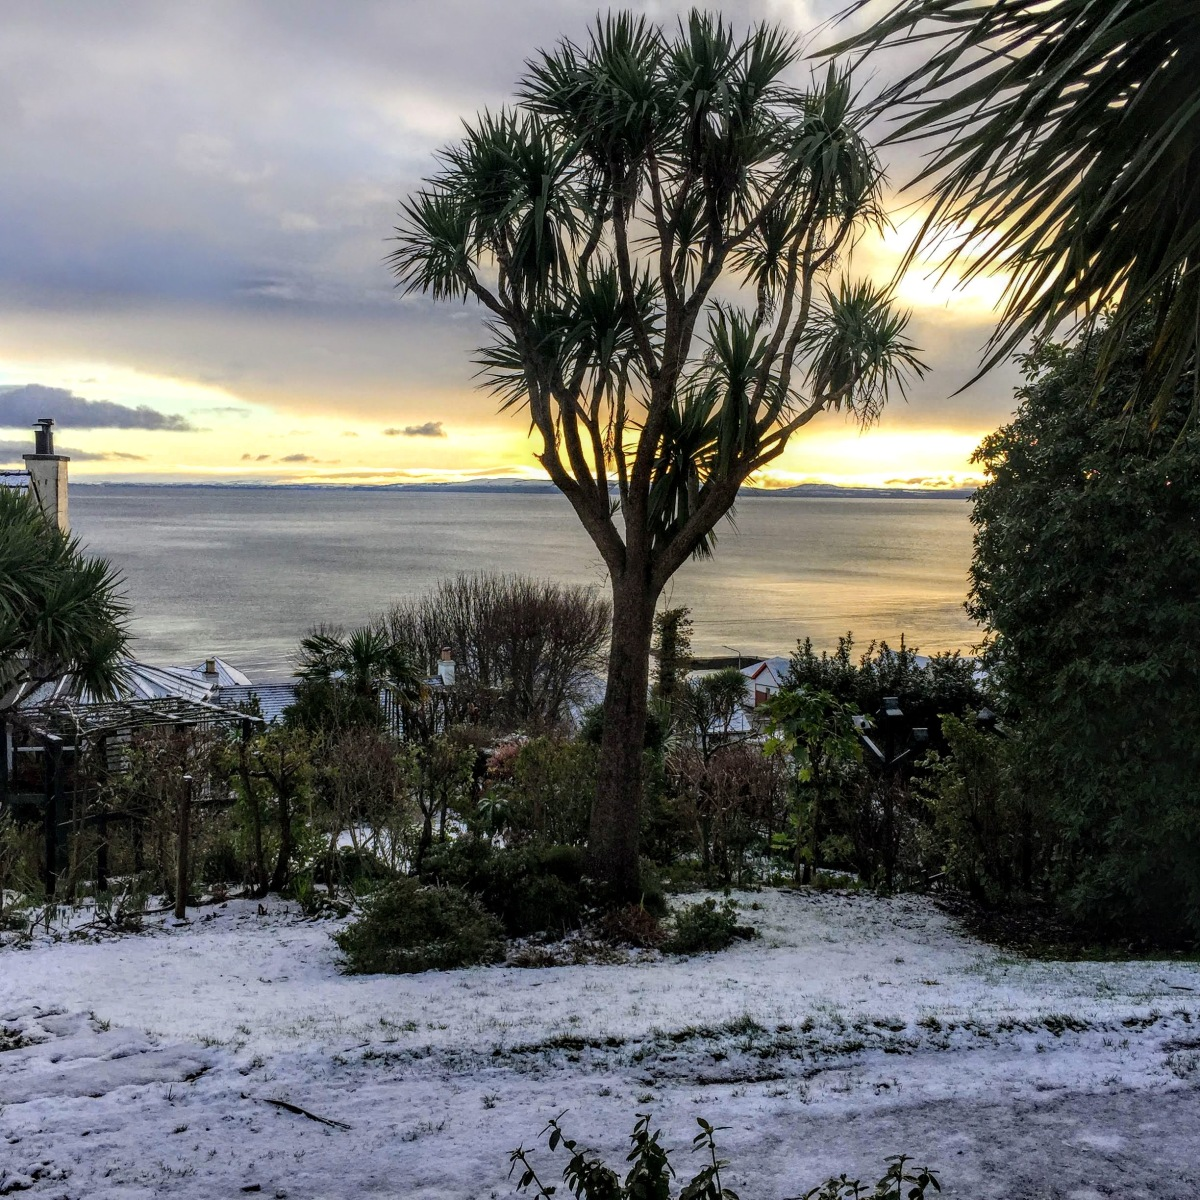 Island winter: snow and palm trees.  #Scotland #WordlessWednesday